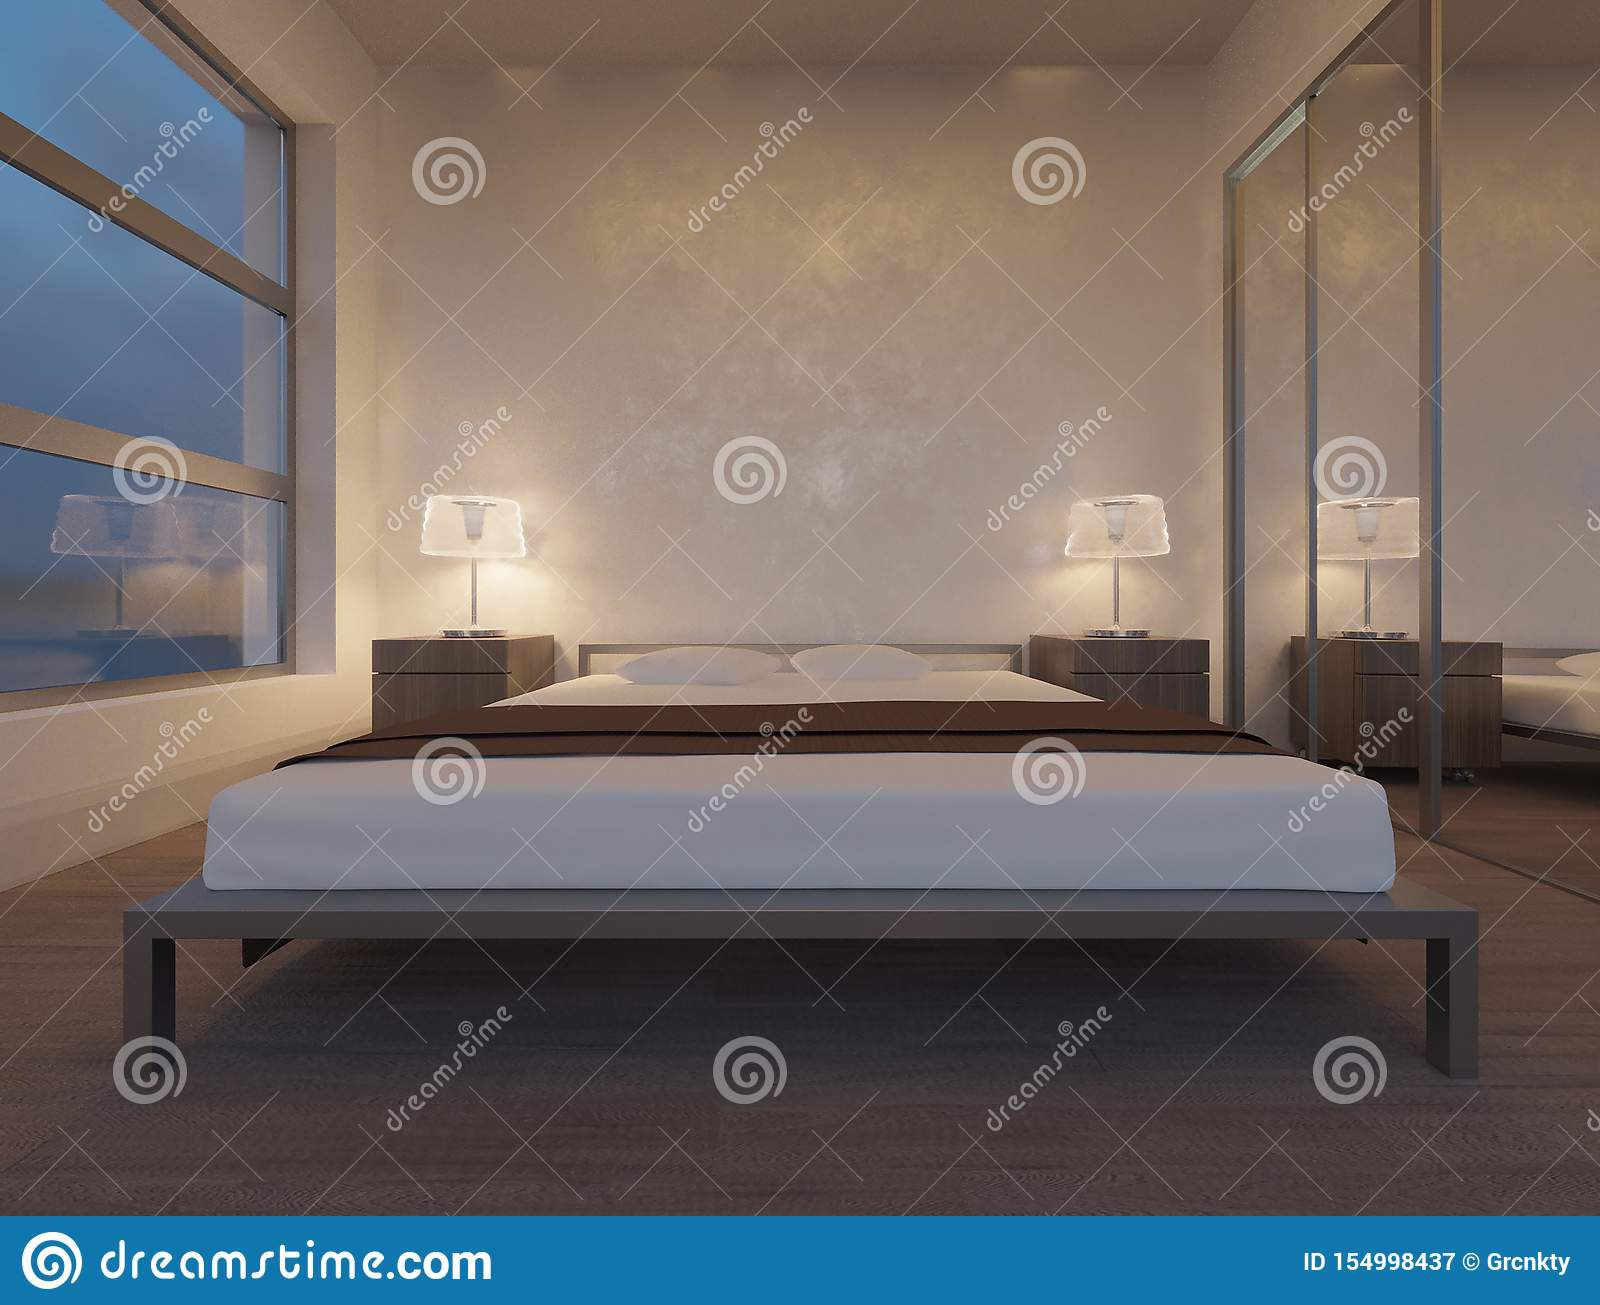 Modern Minimalist Bedroom Wooden Bed Stock Image - Image of ...